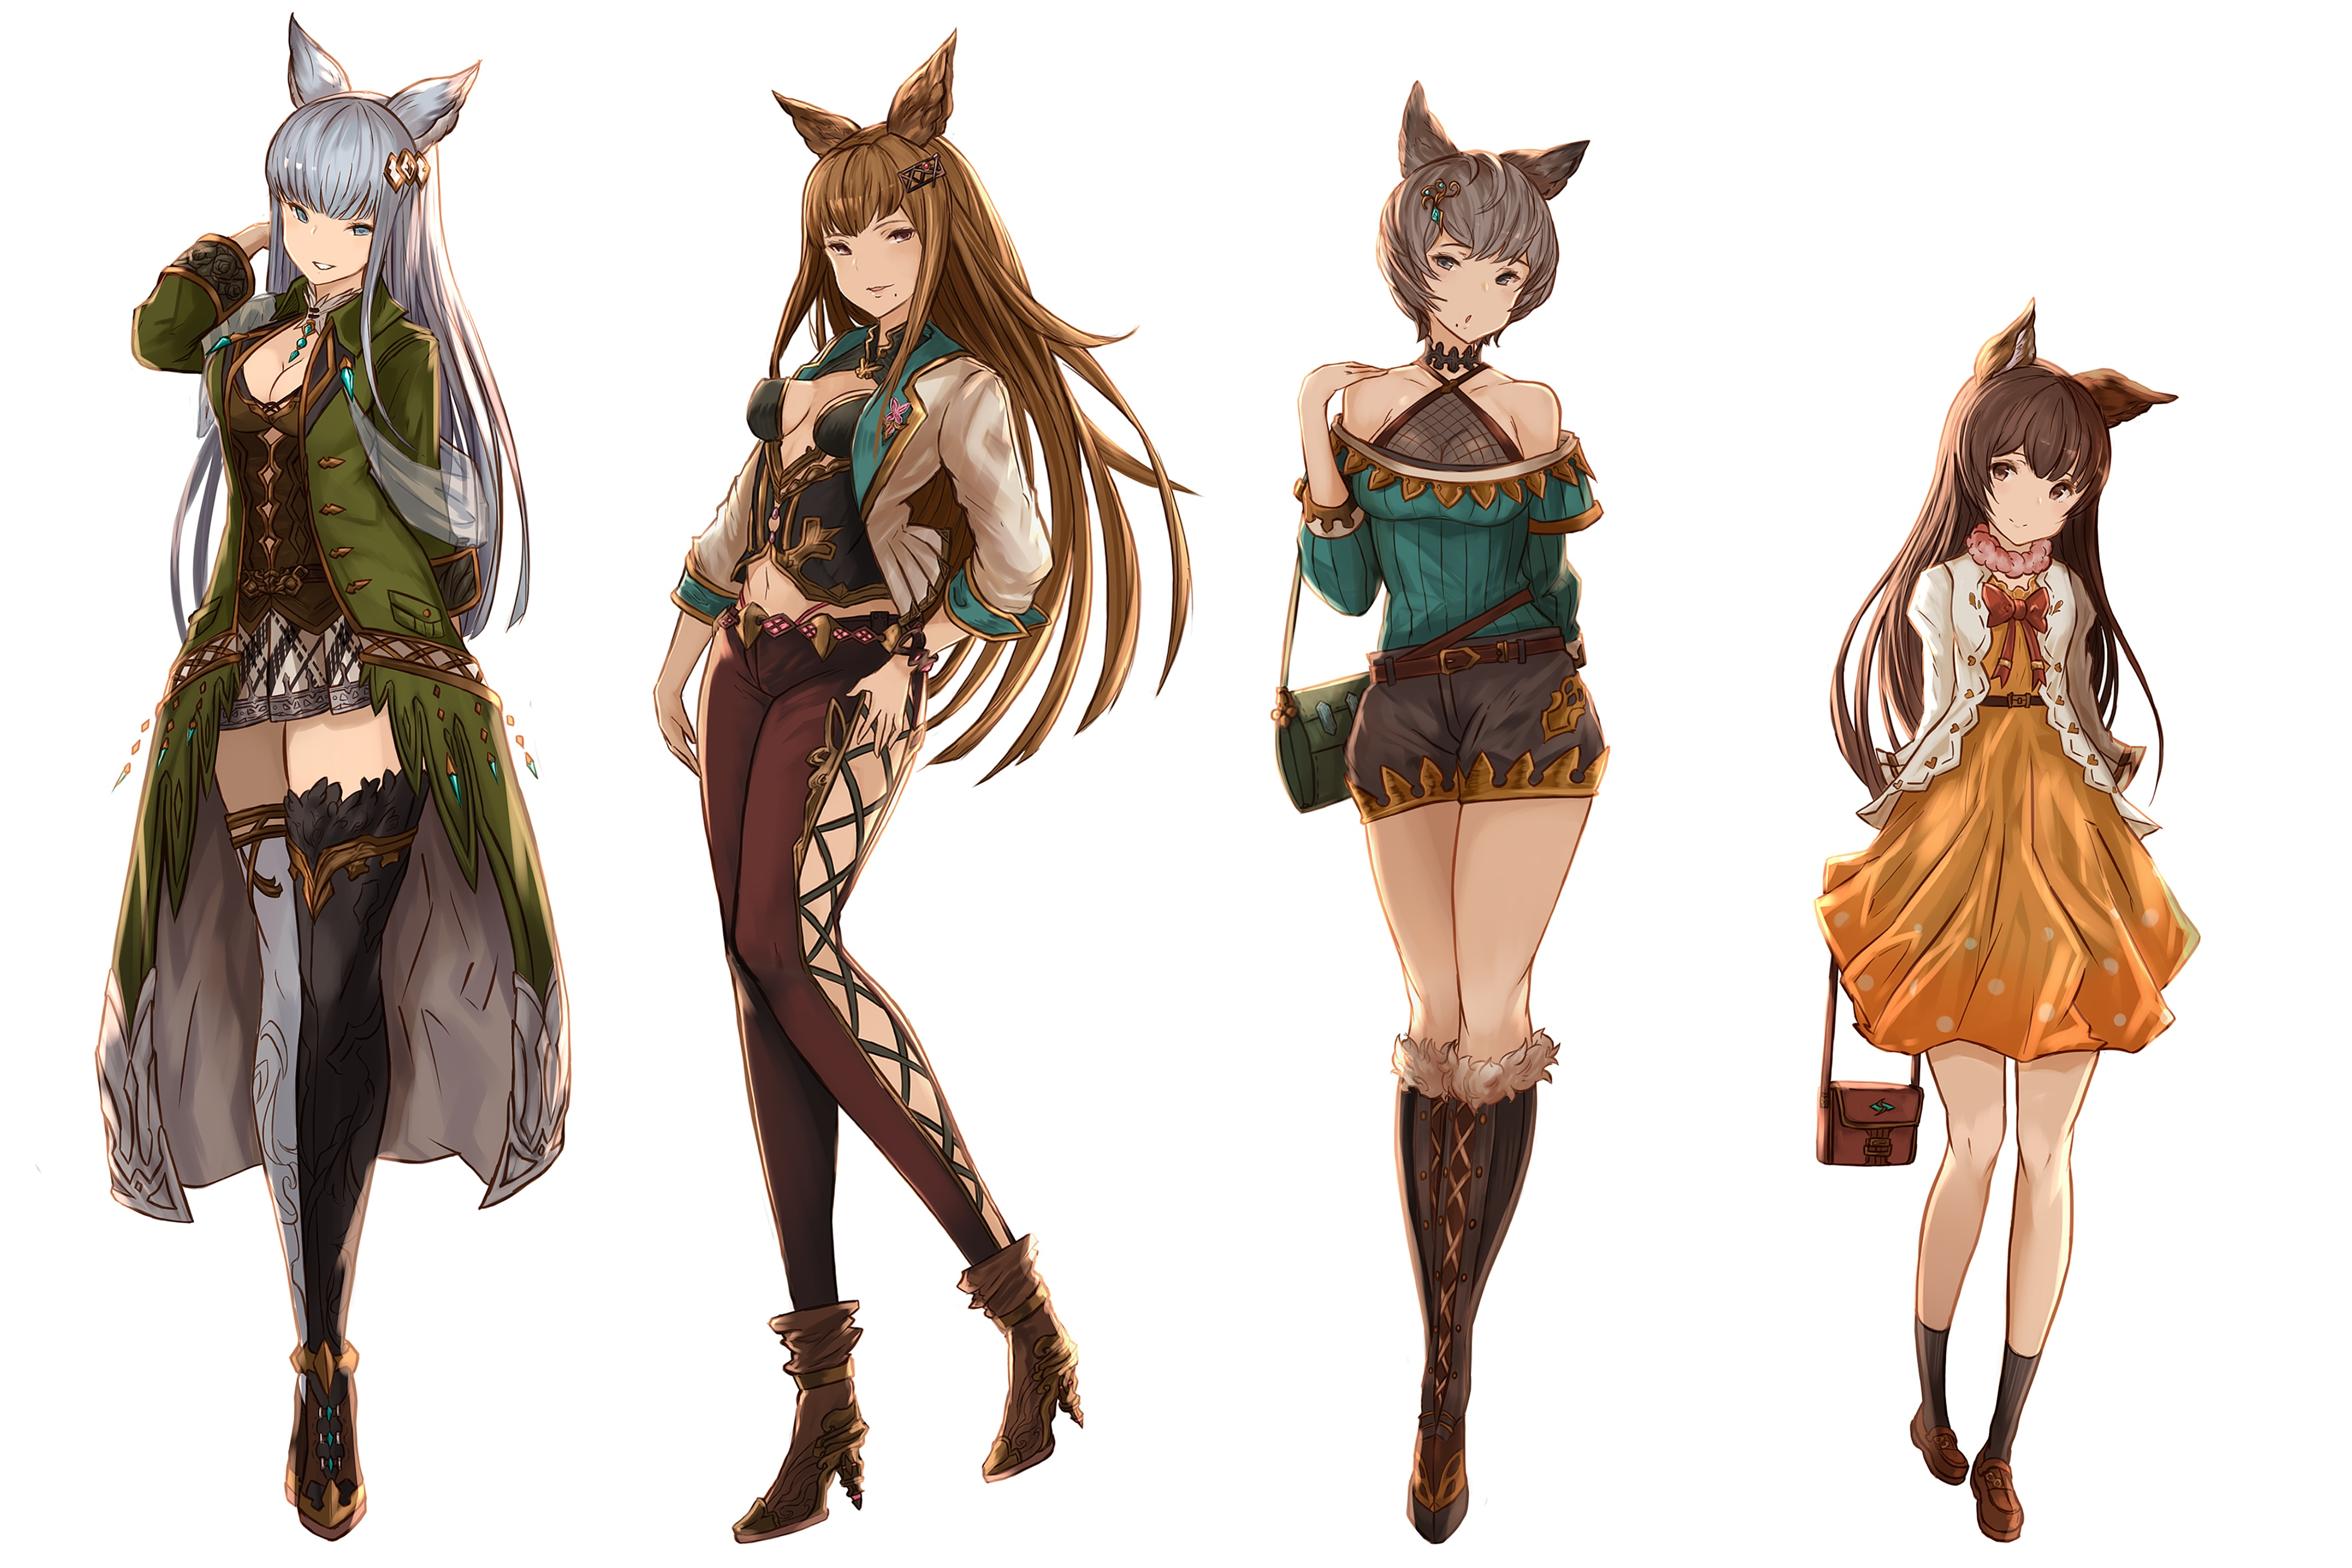 yande.re 373231 animal_ears cleavage dress fishnets granblue_fantasy heels no_bra thighhighs yatsuka_(846).jpg